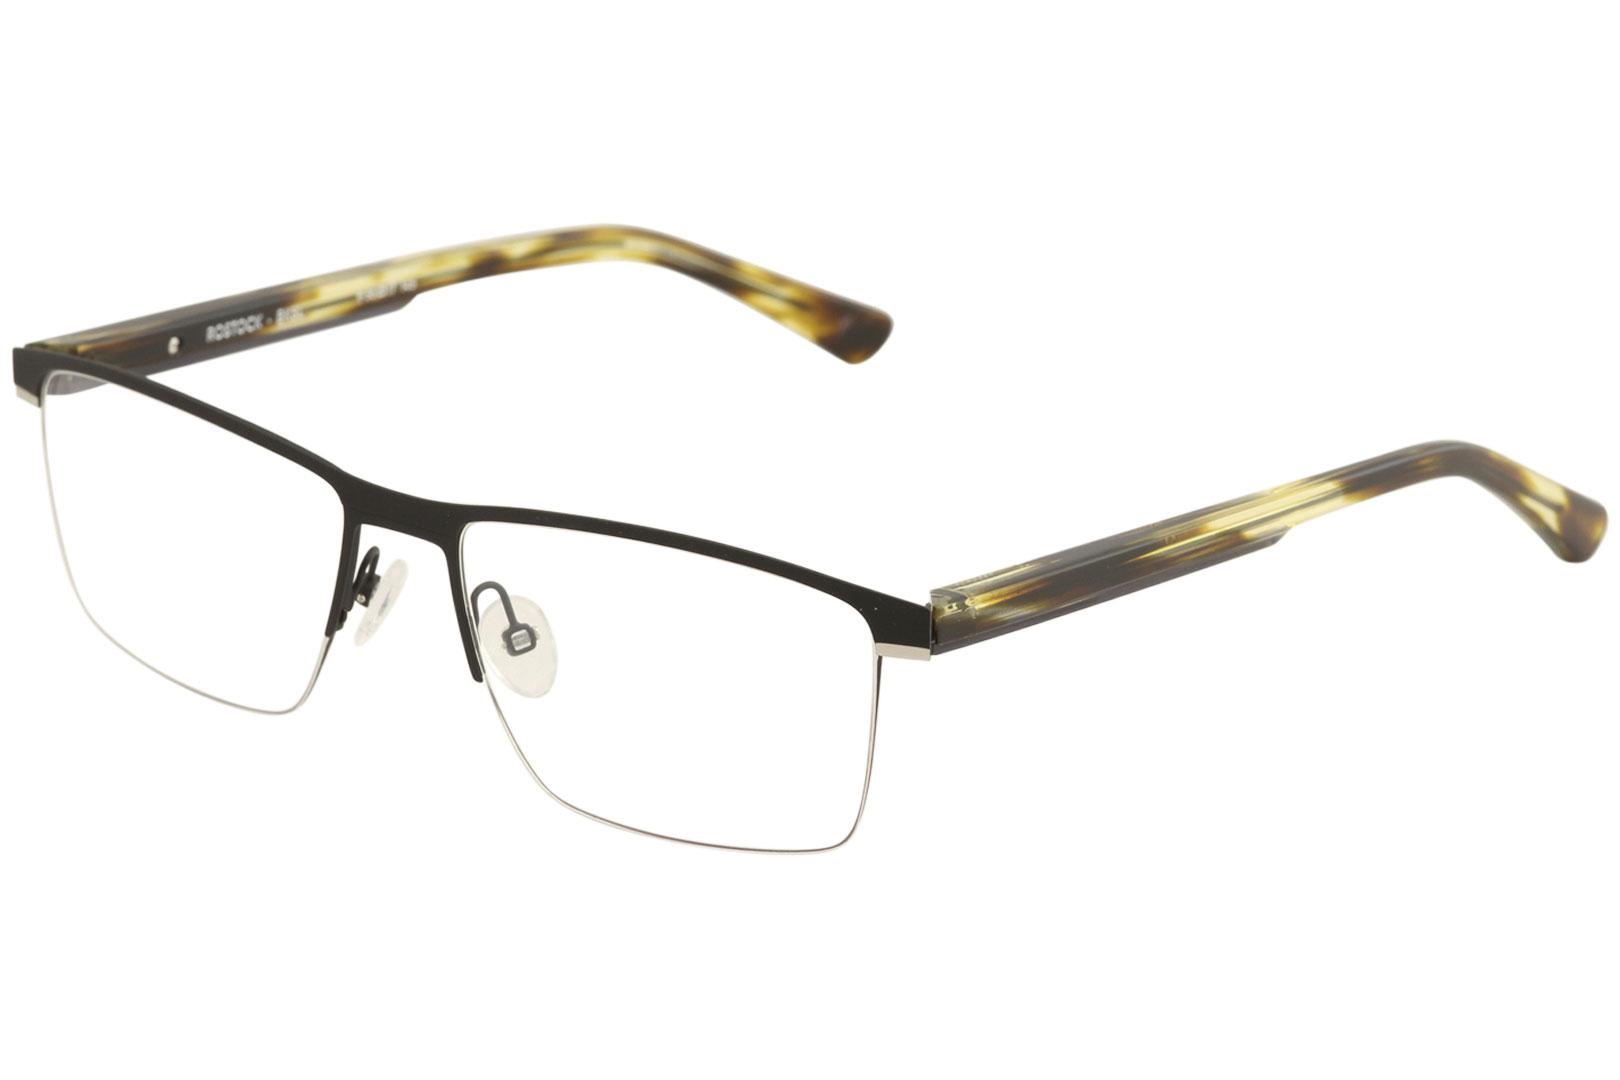 Image of Etnia Barcelona Men's Eyeglasses Rostock Full Rim Optical Frame - Black/Silver   BKSL - Lens 56 Bridge 17 Temple 145mm